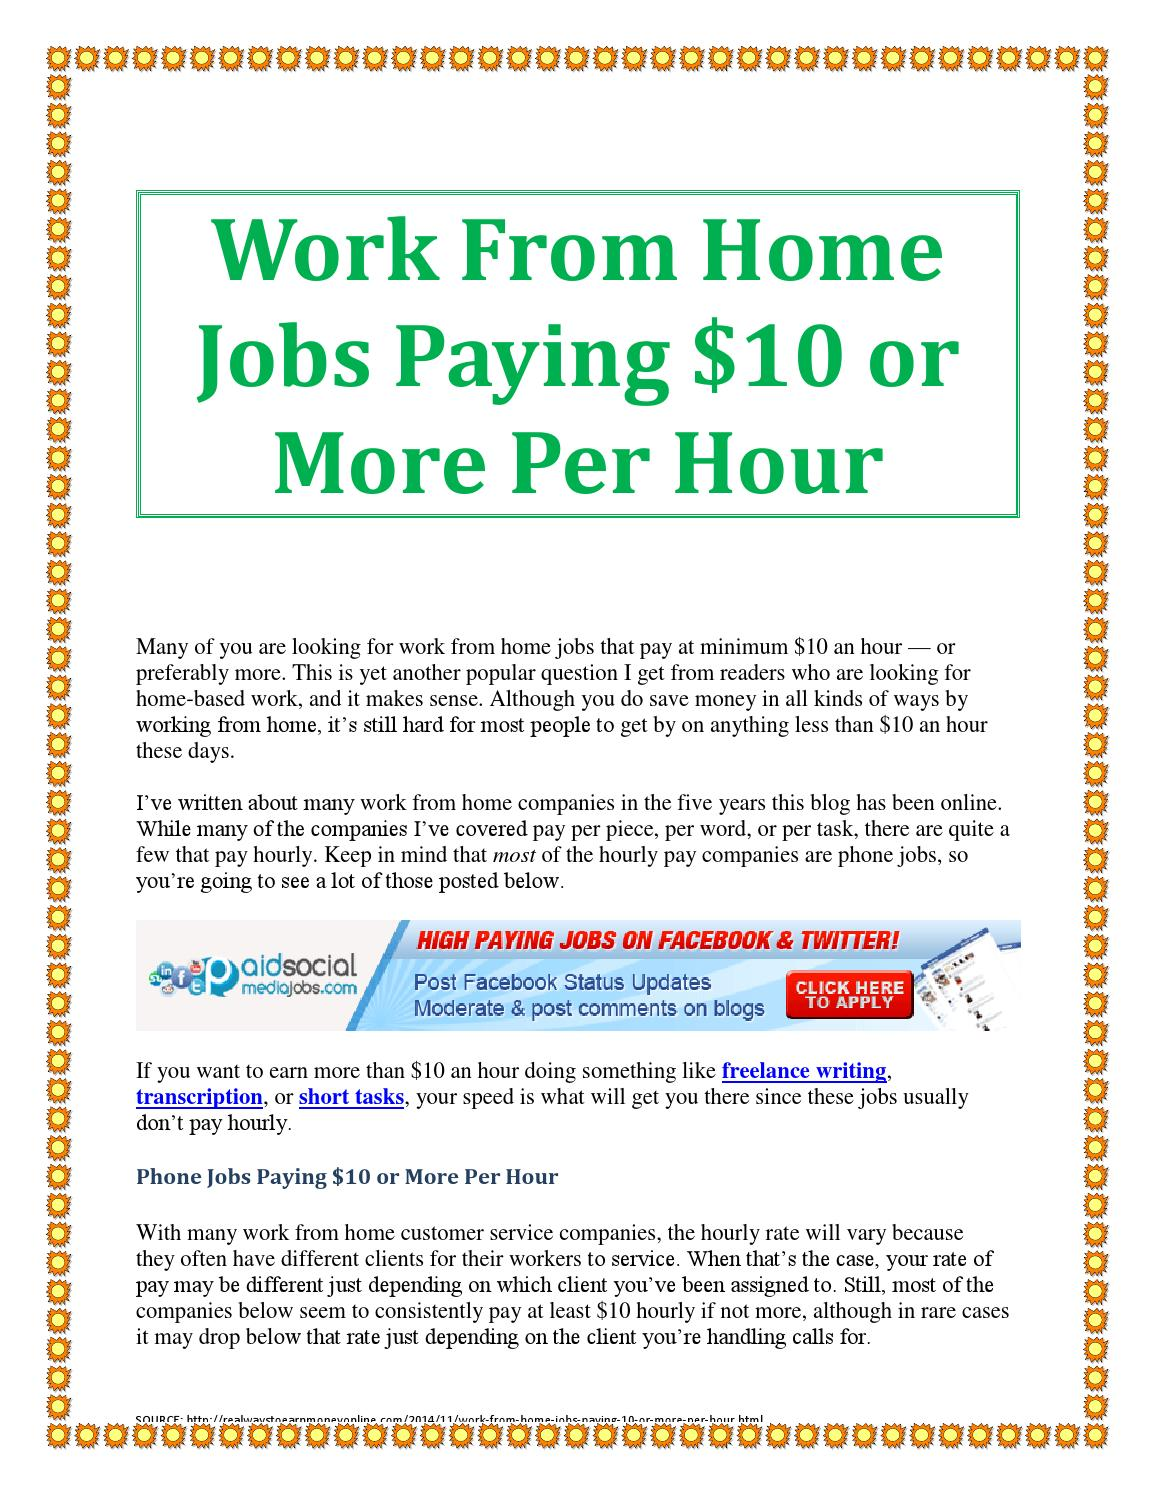 40+ Work from home jobs paying $10 or more per hour by